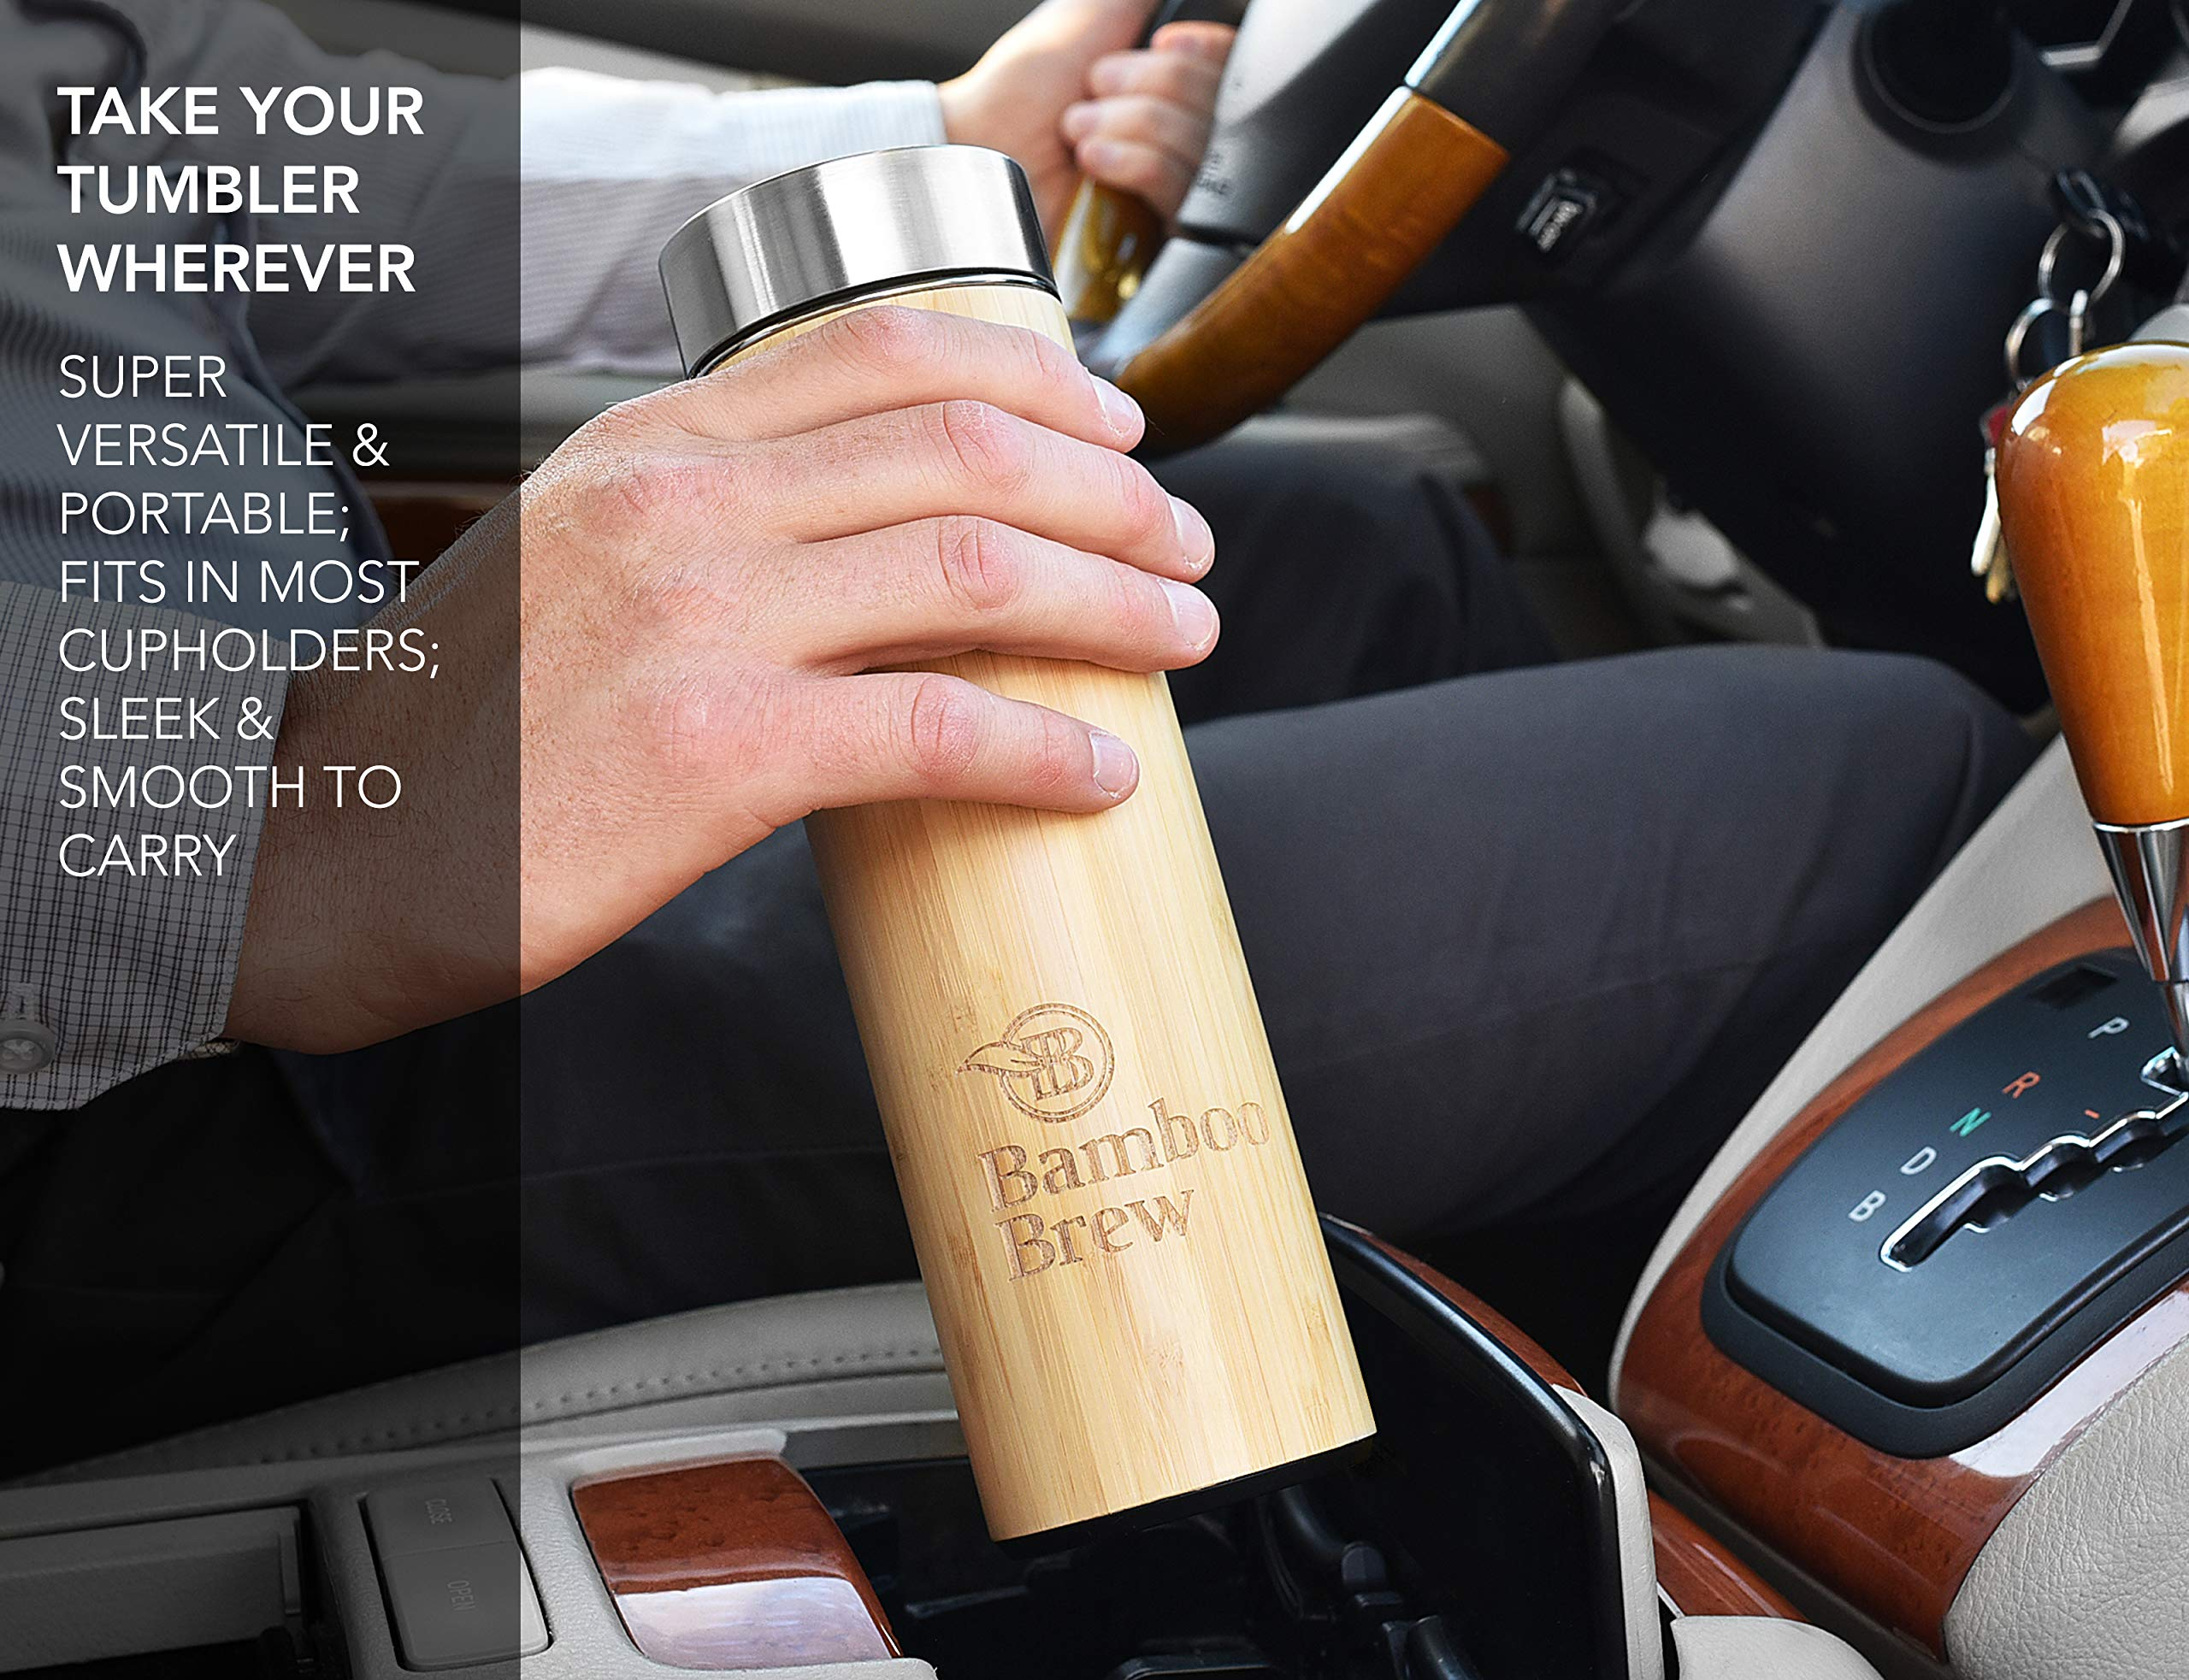 Bamboo Tumbler with Infuser & Strainer 18oz | Stainless Steel Coffee & Tea Flask | Double Wall Vacuum Insulated Travel Mug | Loose Leaf Detox Brew & Fruit Infusion Water Bottle | Ecofriendly Thermos by Bamboo Brew (Image #5)